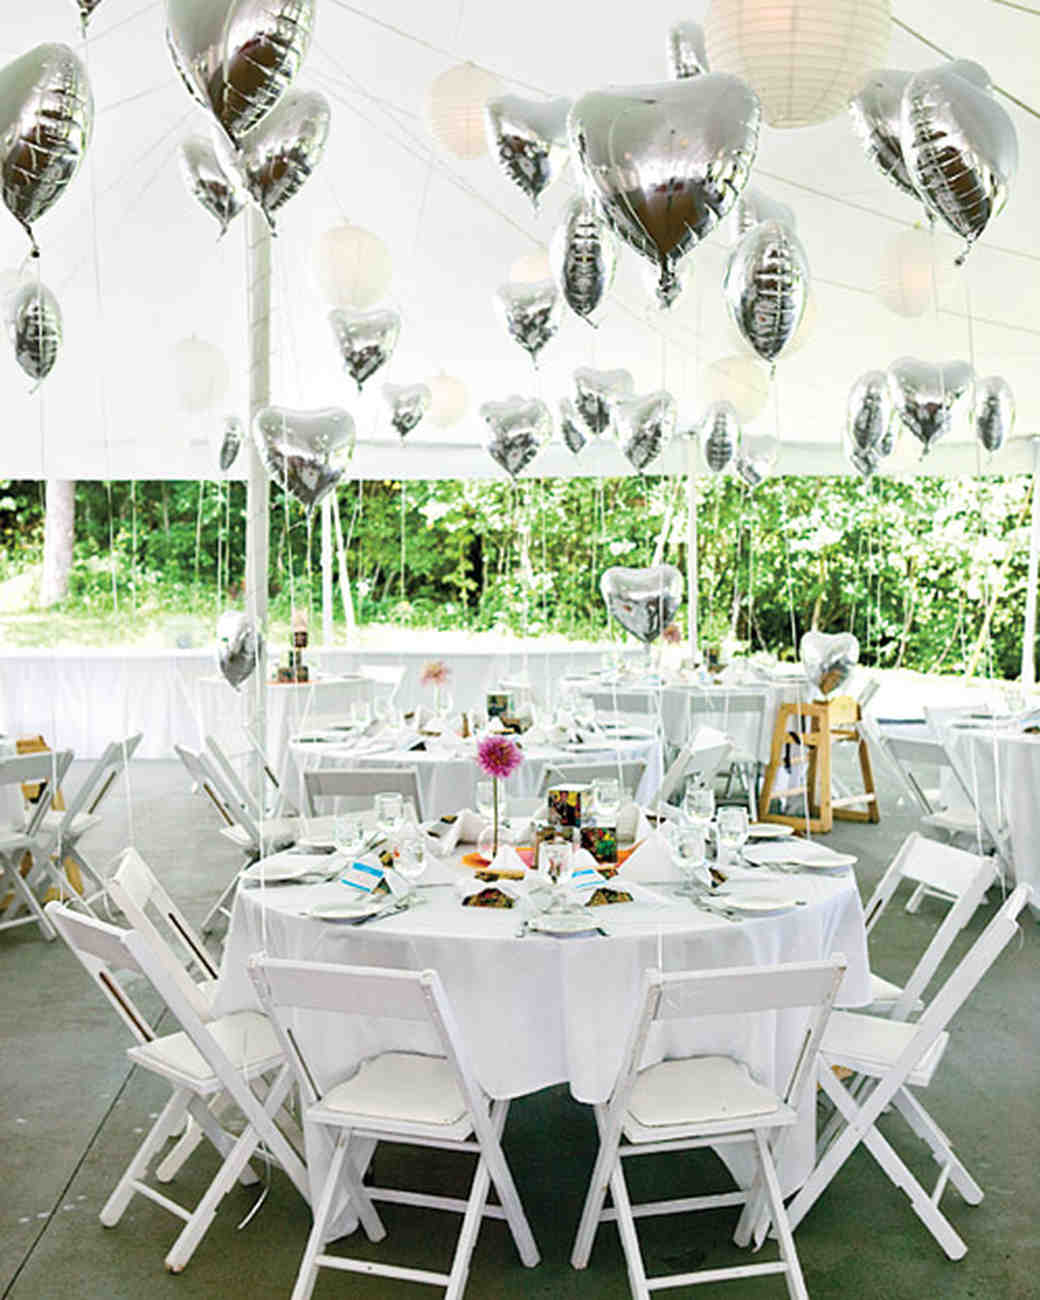 Wedding Party Decorations: DIY Balloon Wedding Decor